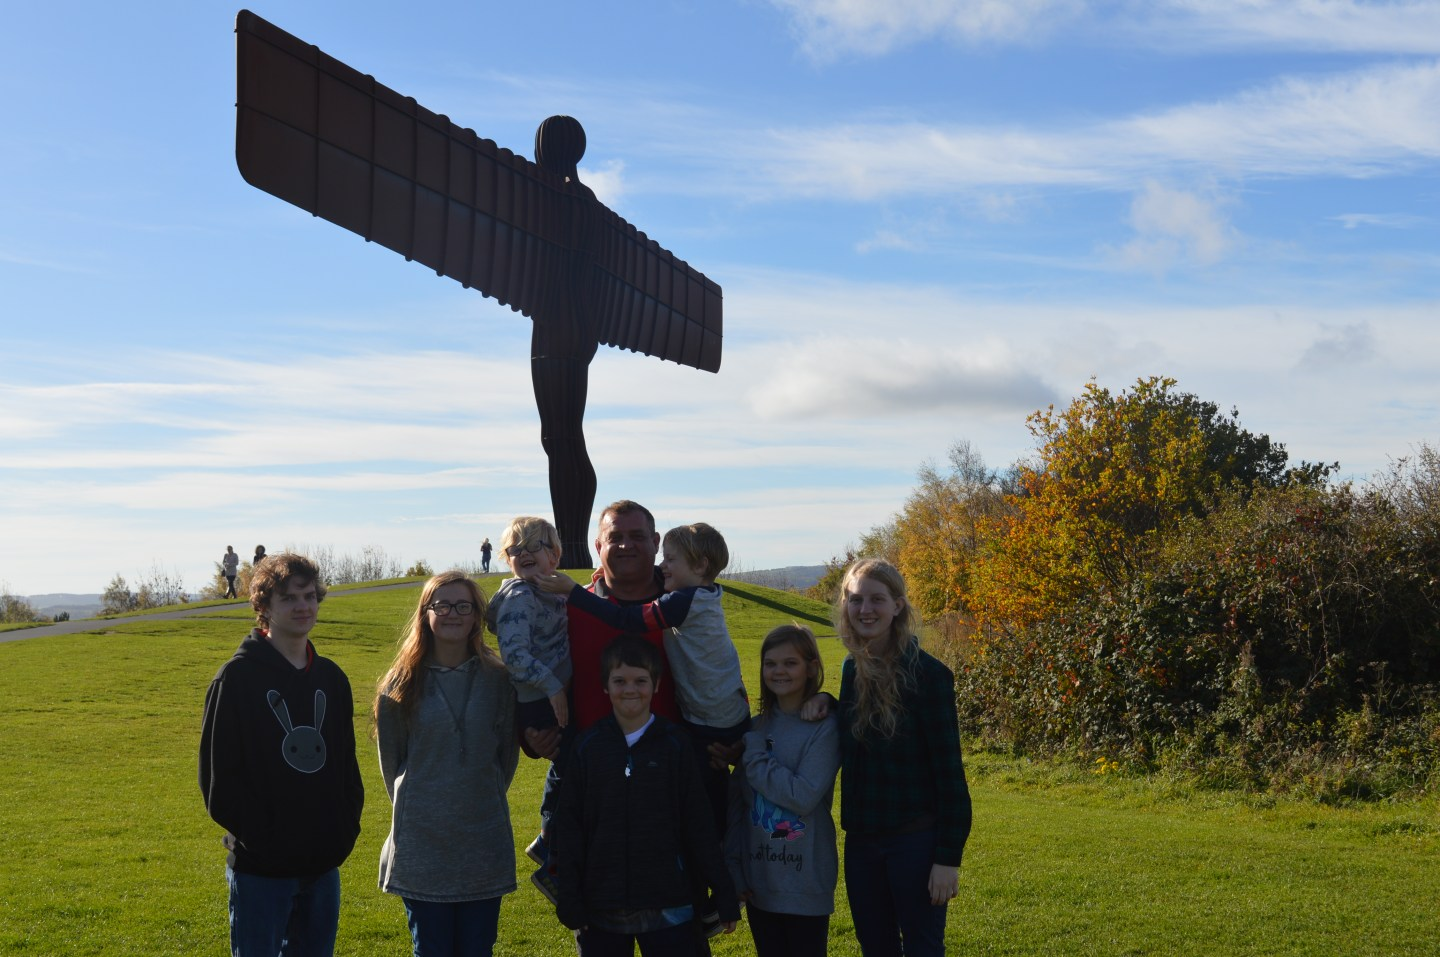 Family photo with angel of the north in the background on a A day trip to Newcastle